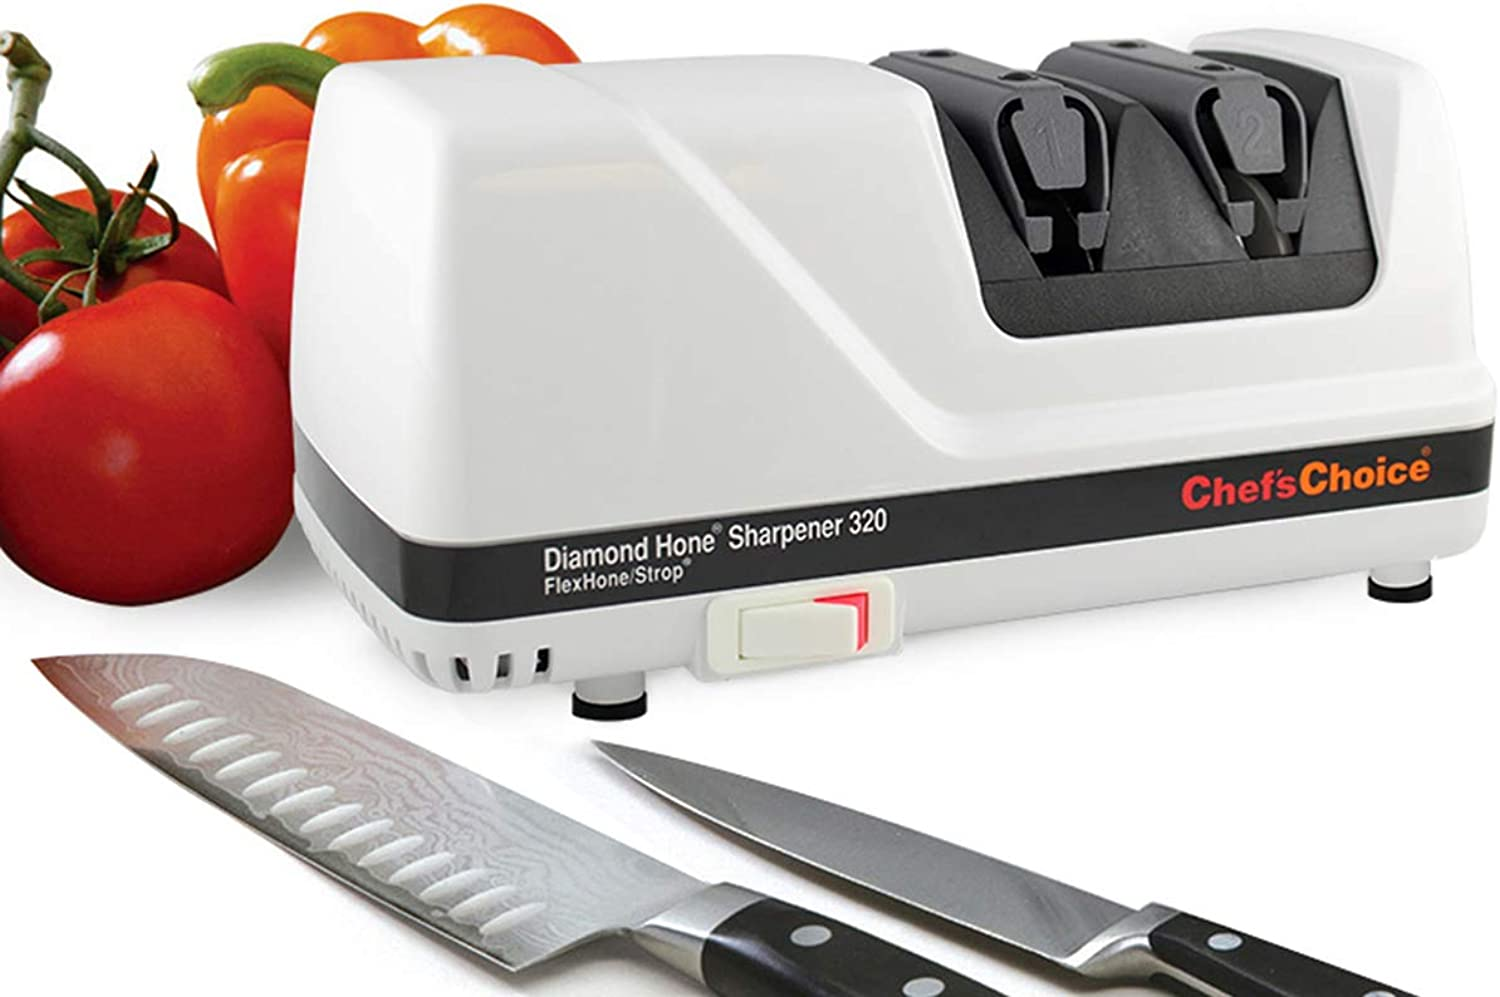 Chef'sChoice 320 Diamond Hone FlexHone Strop Professional Compact Electric Knife Sharpener with Diamond Abrasives and Precision Angle Control, 2-Stage, White